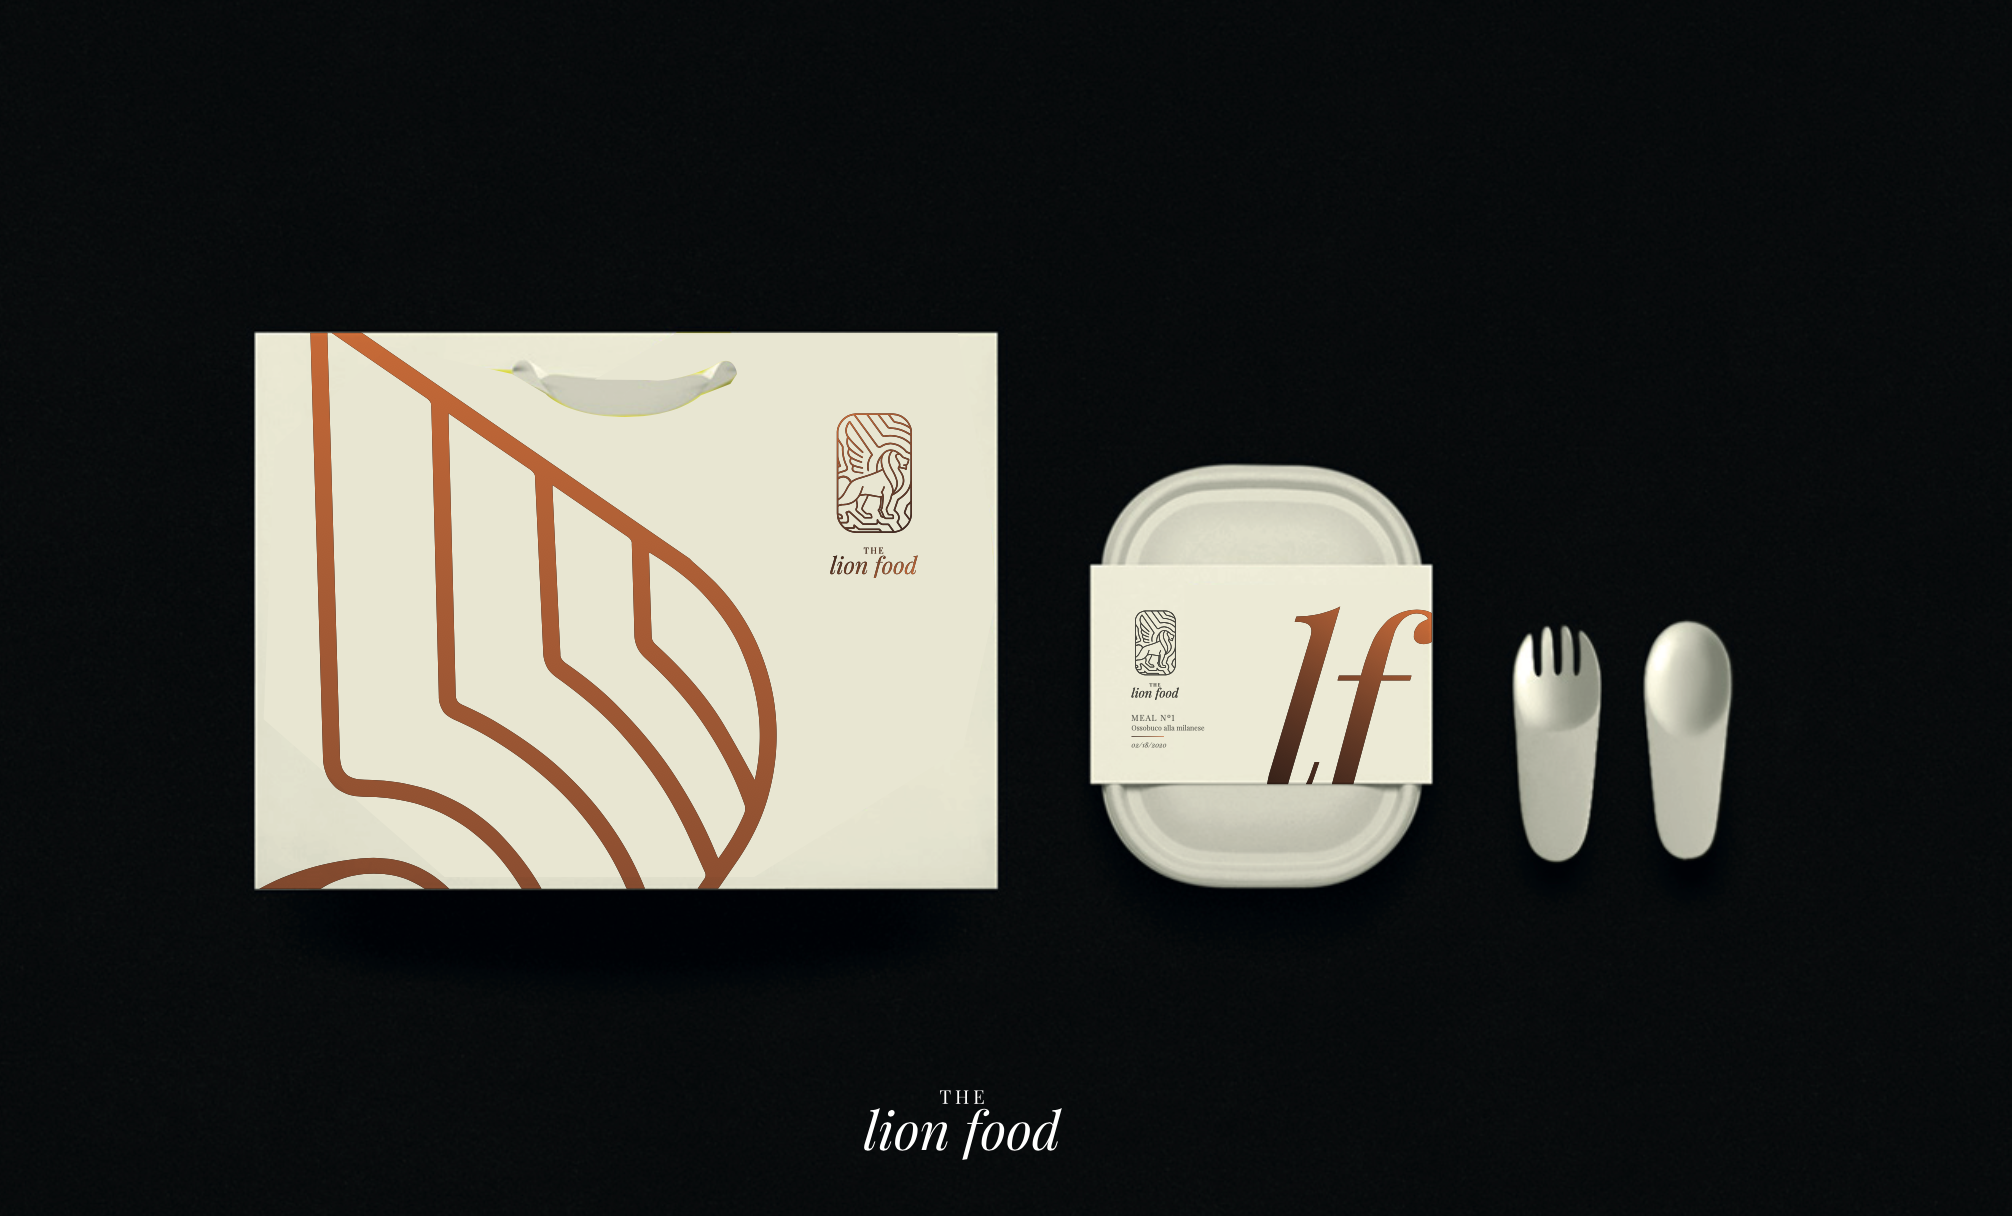 The Lion food